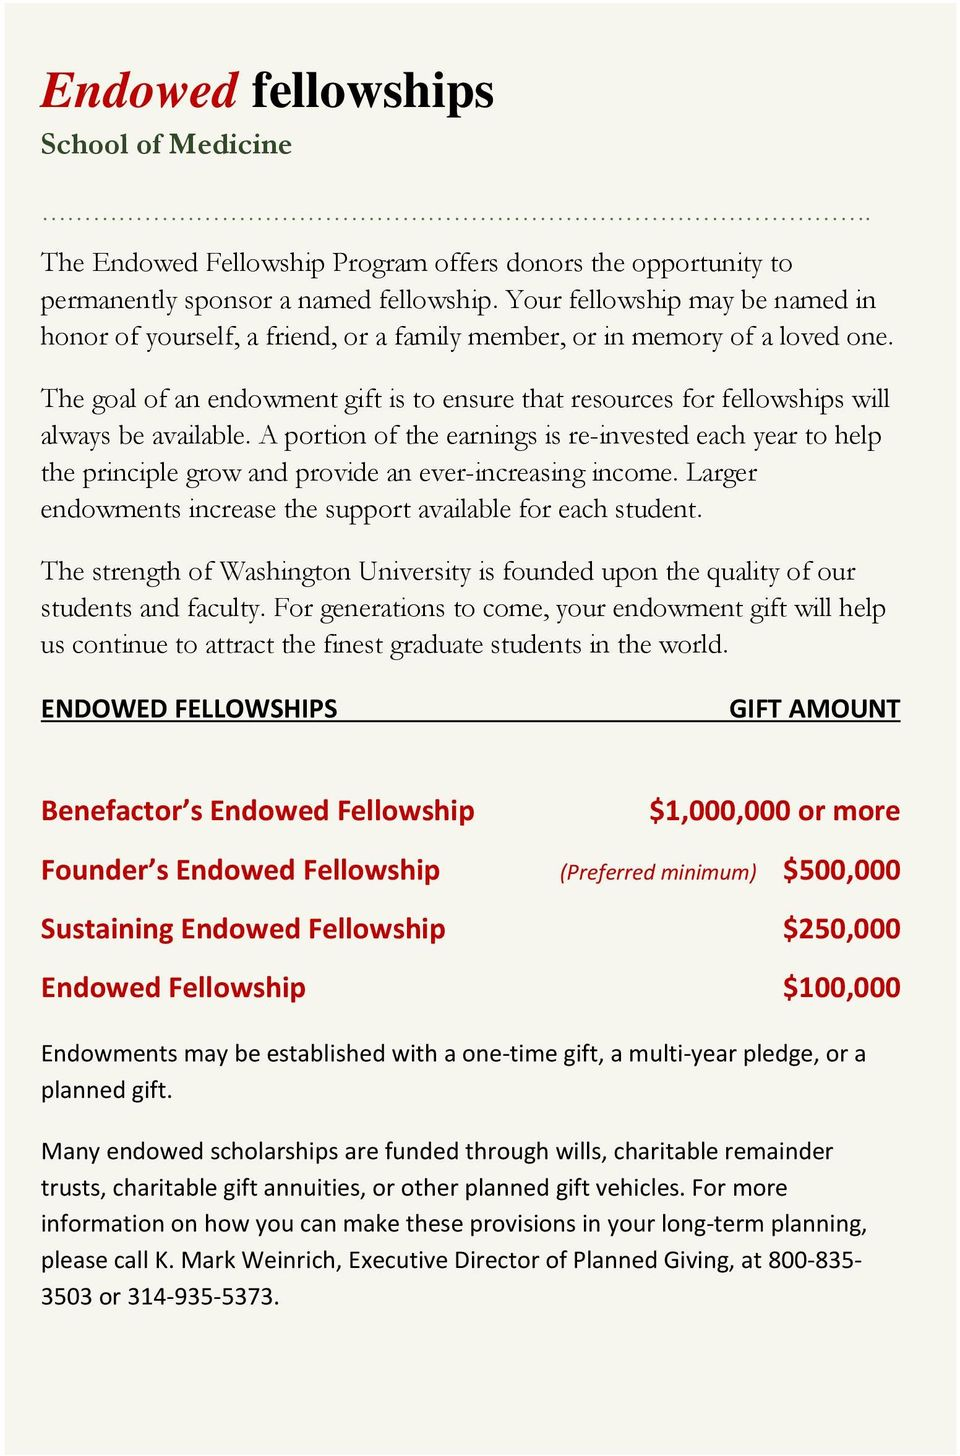 The goal of an endowment gift is to ensure that resources for fellowships will always be available.